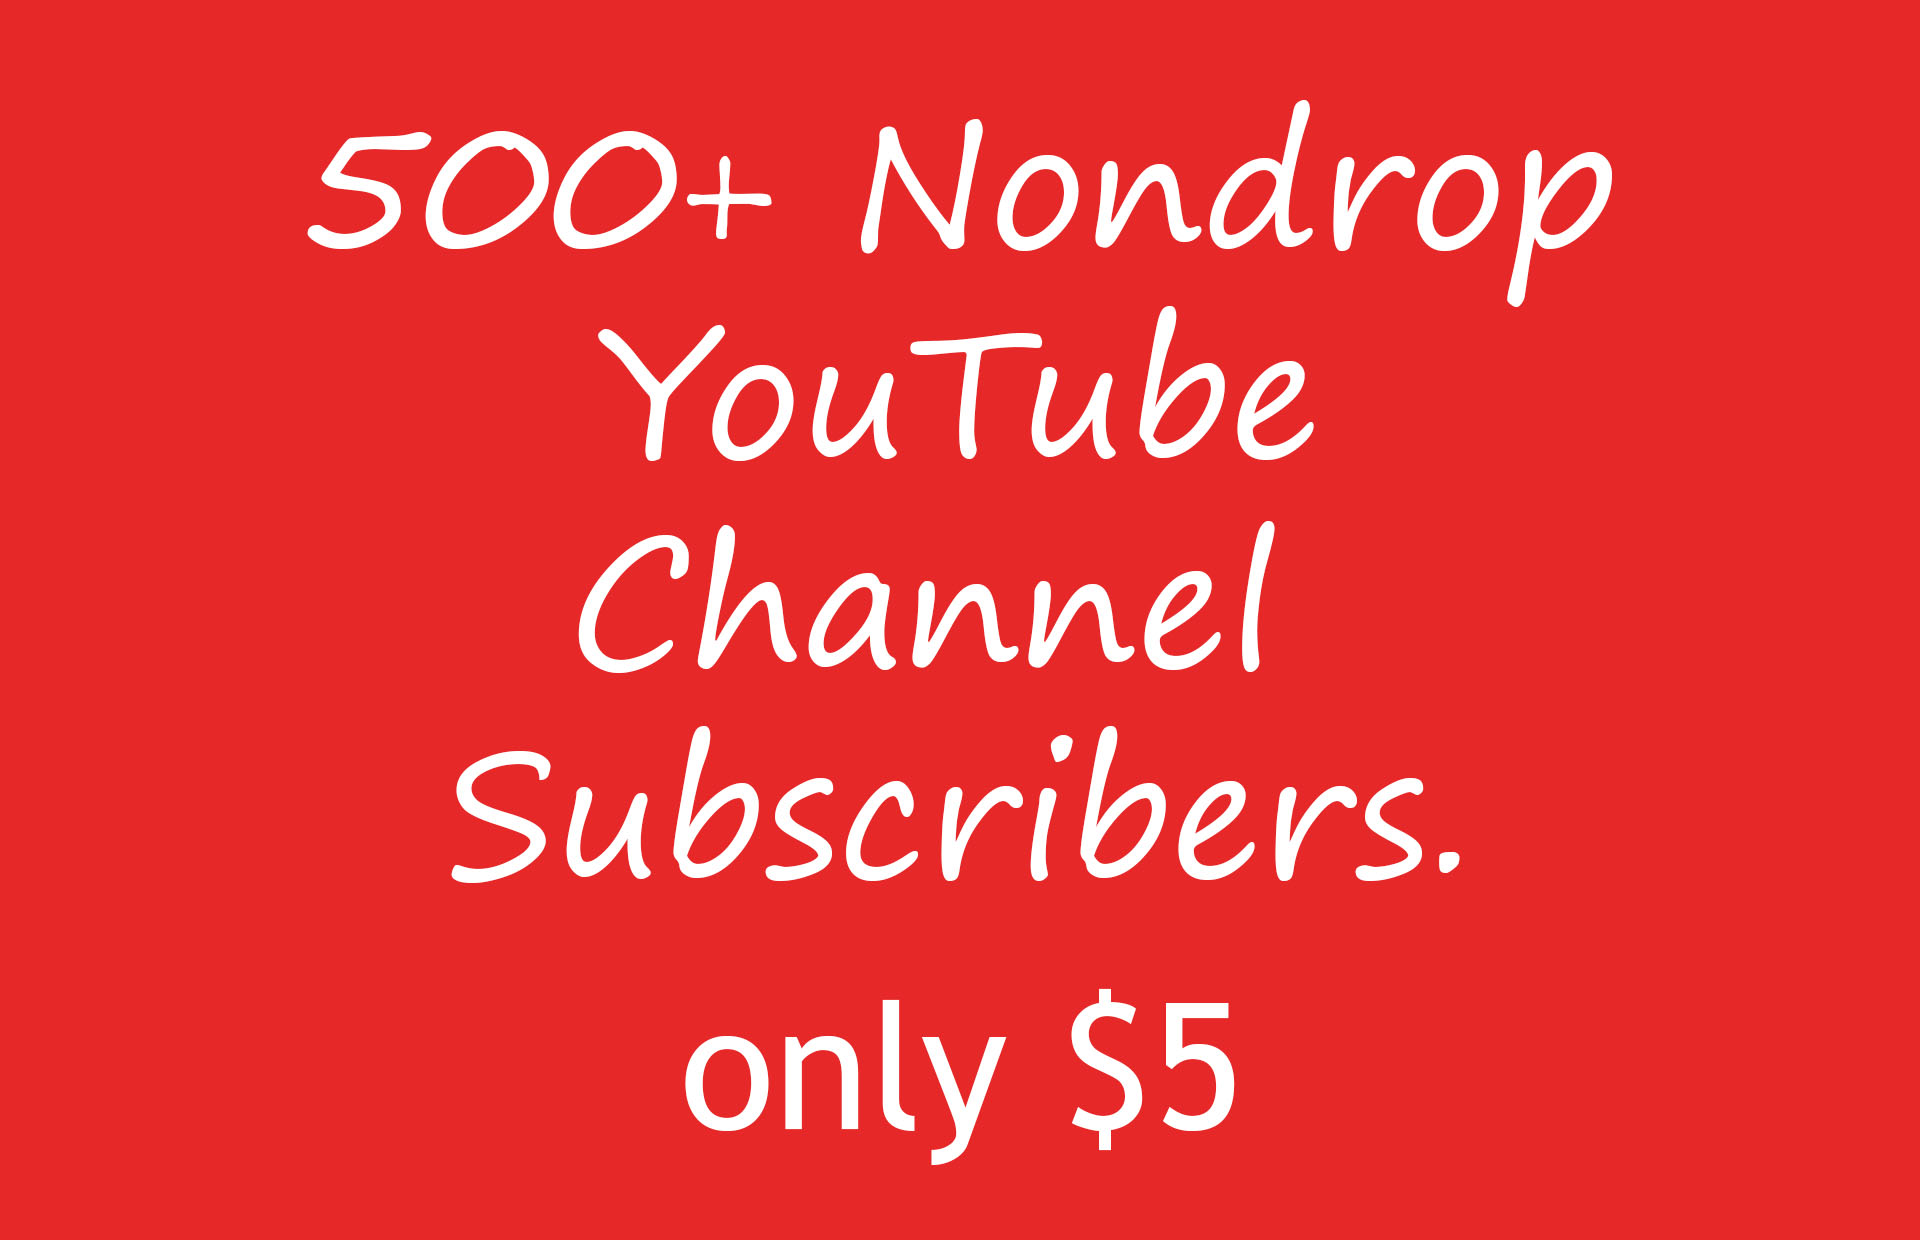 Never drop, 500+ YouTube Chanell Subscri 'bers Manually no bot-points permanently guaranteed